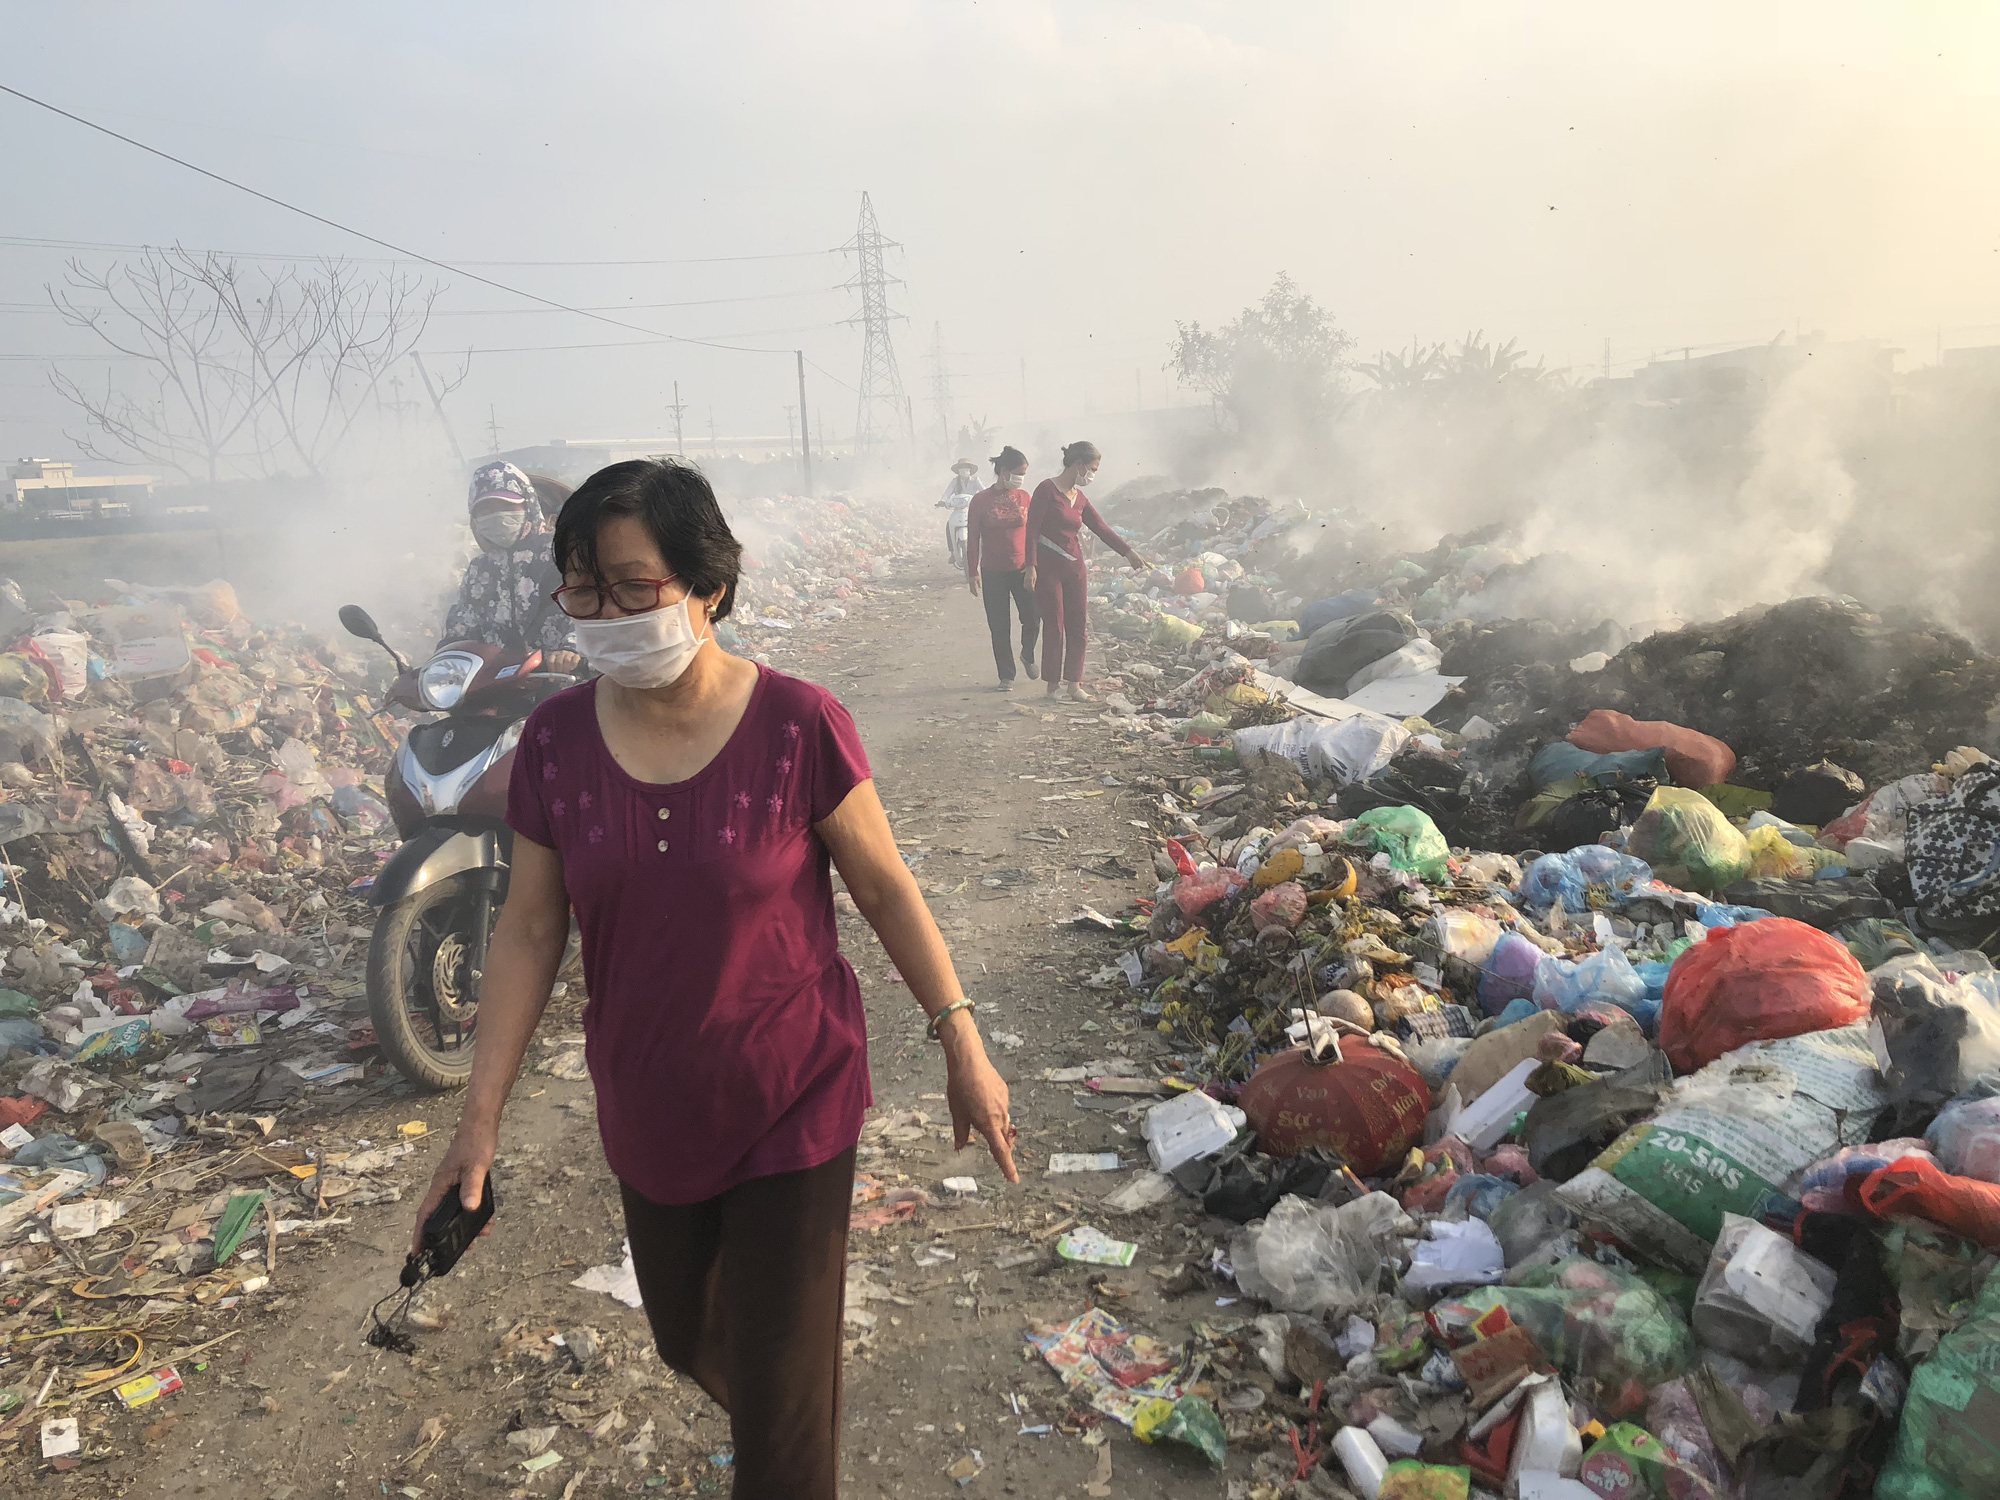 Vietnam's 'most polluted road' poses serious health risks to residents